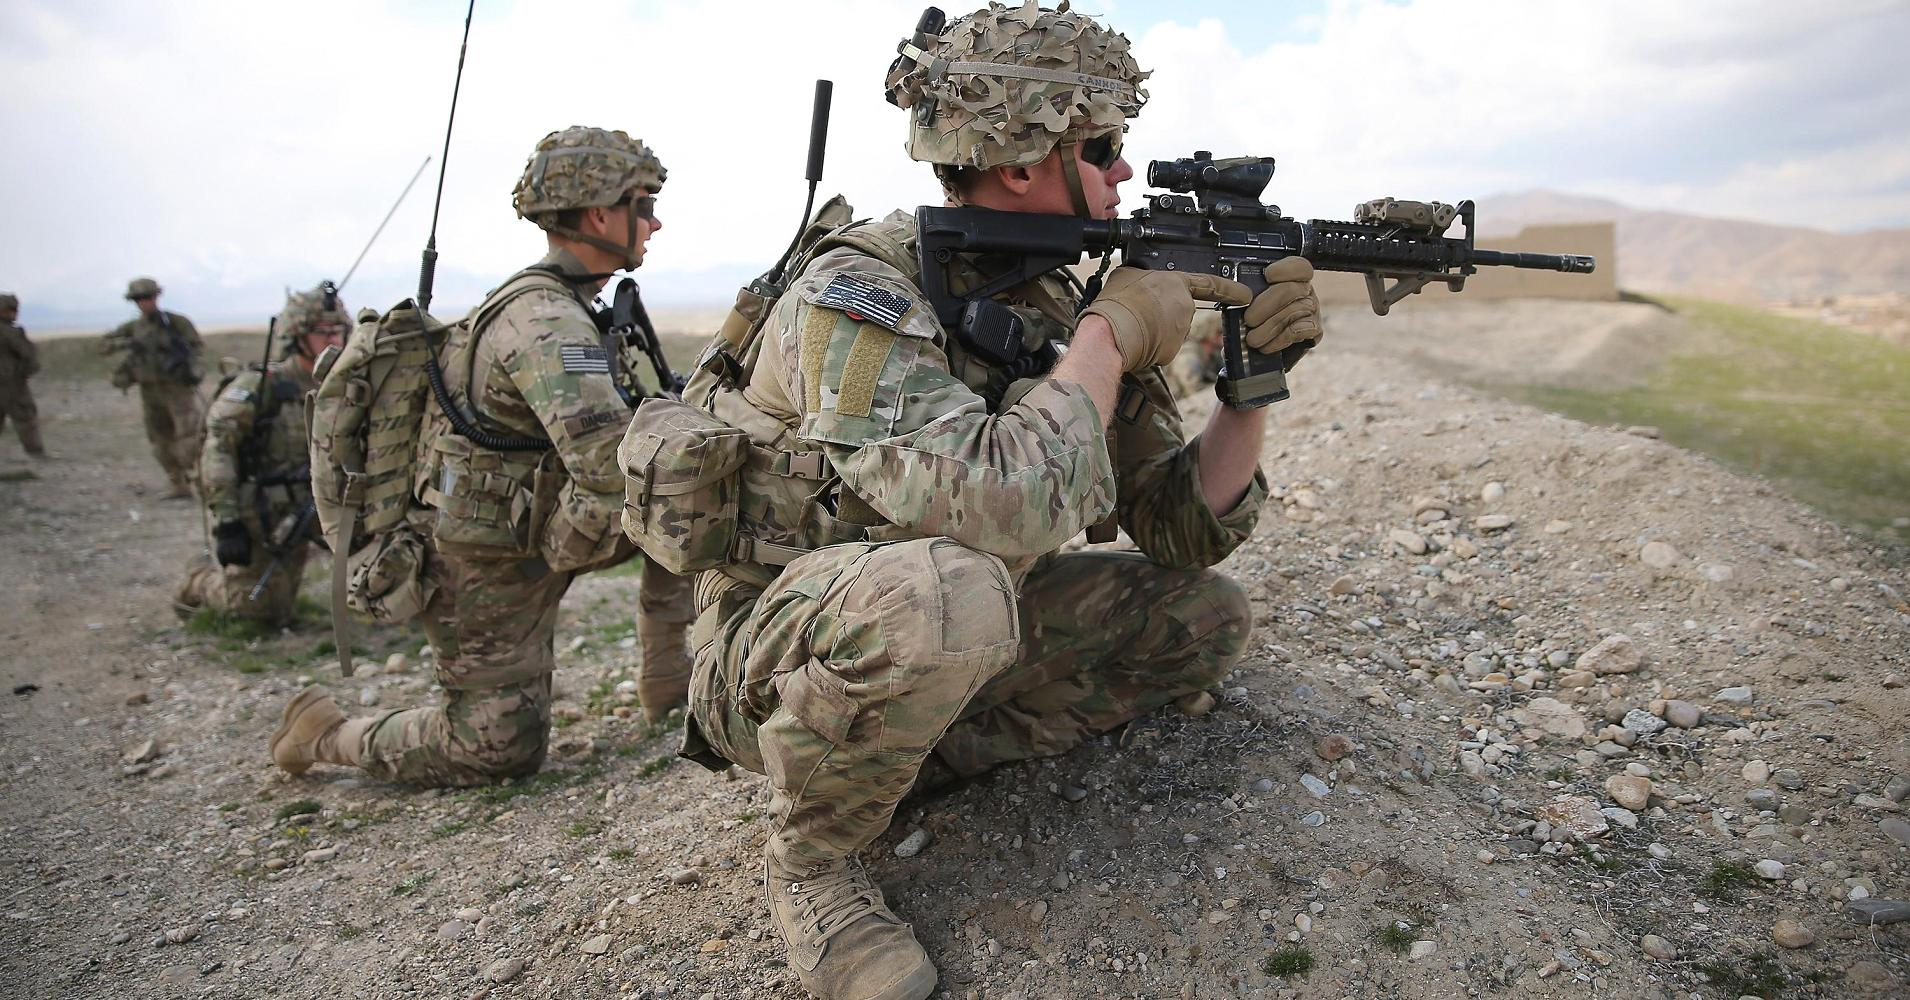 US TROOPS IN SYRIA TAKE FIRE FROM TURKISH PROXY FIGHTERS - DCSS News